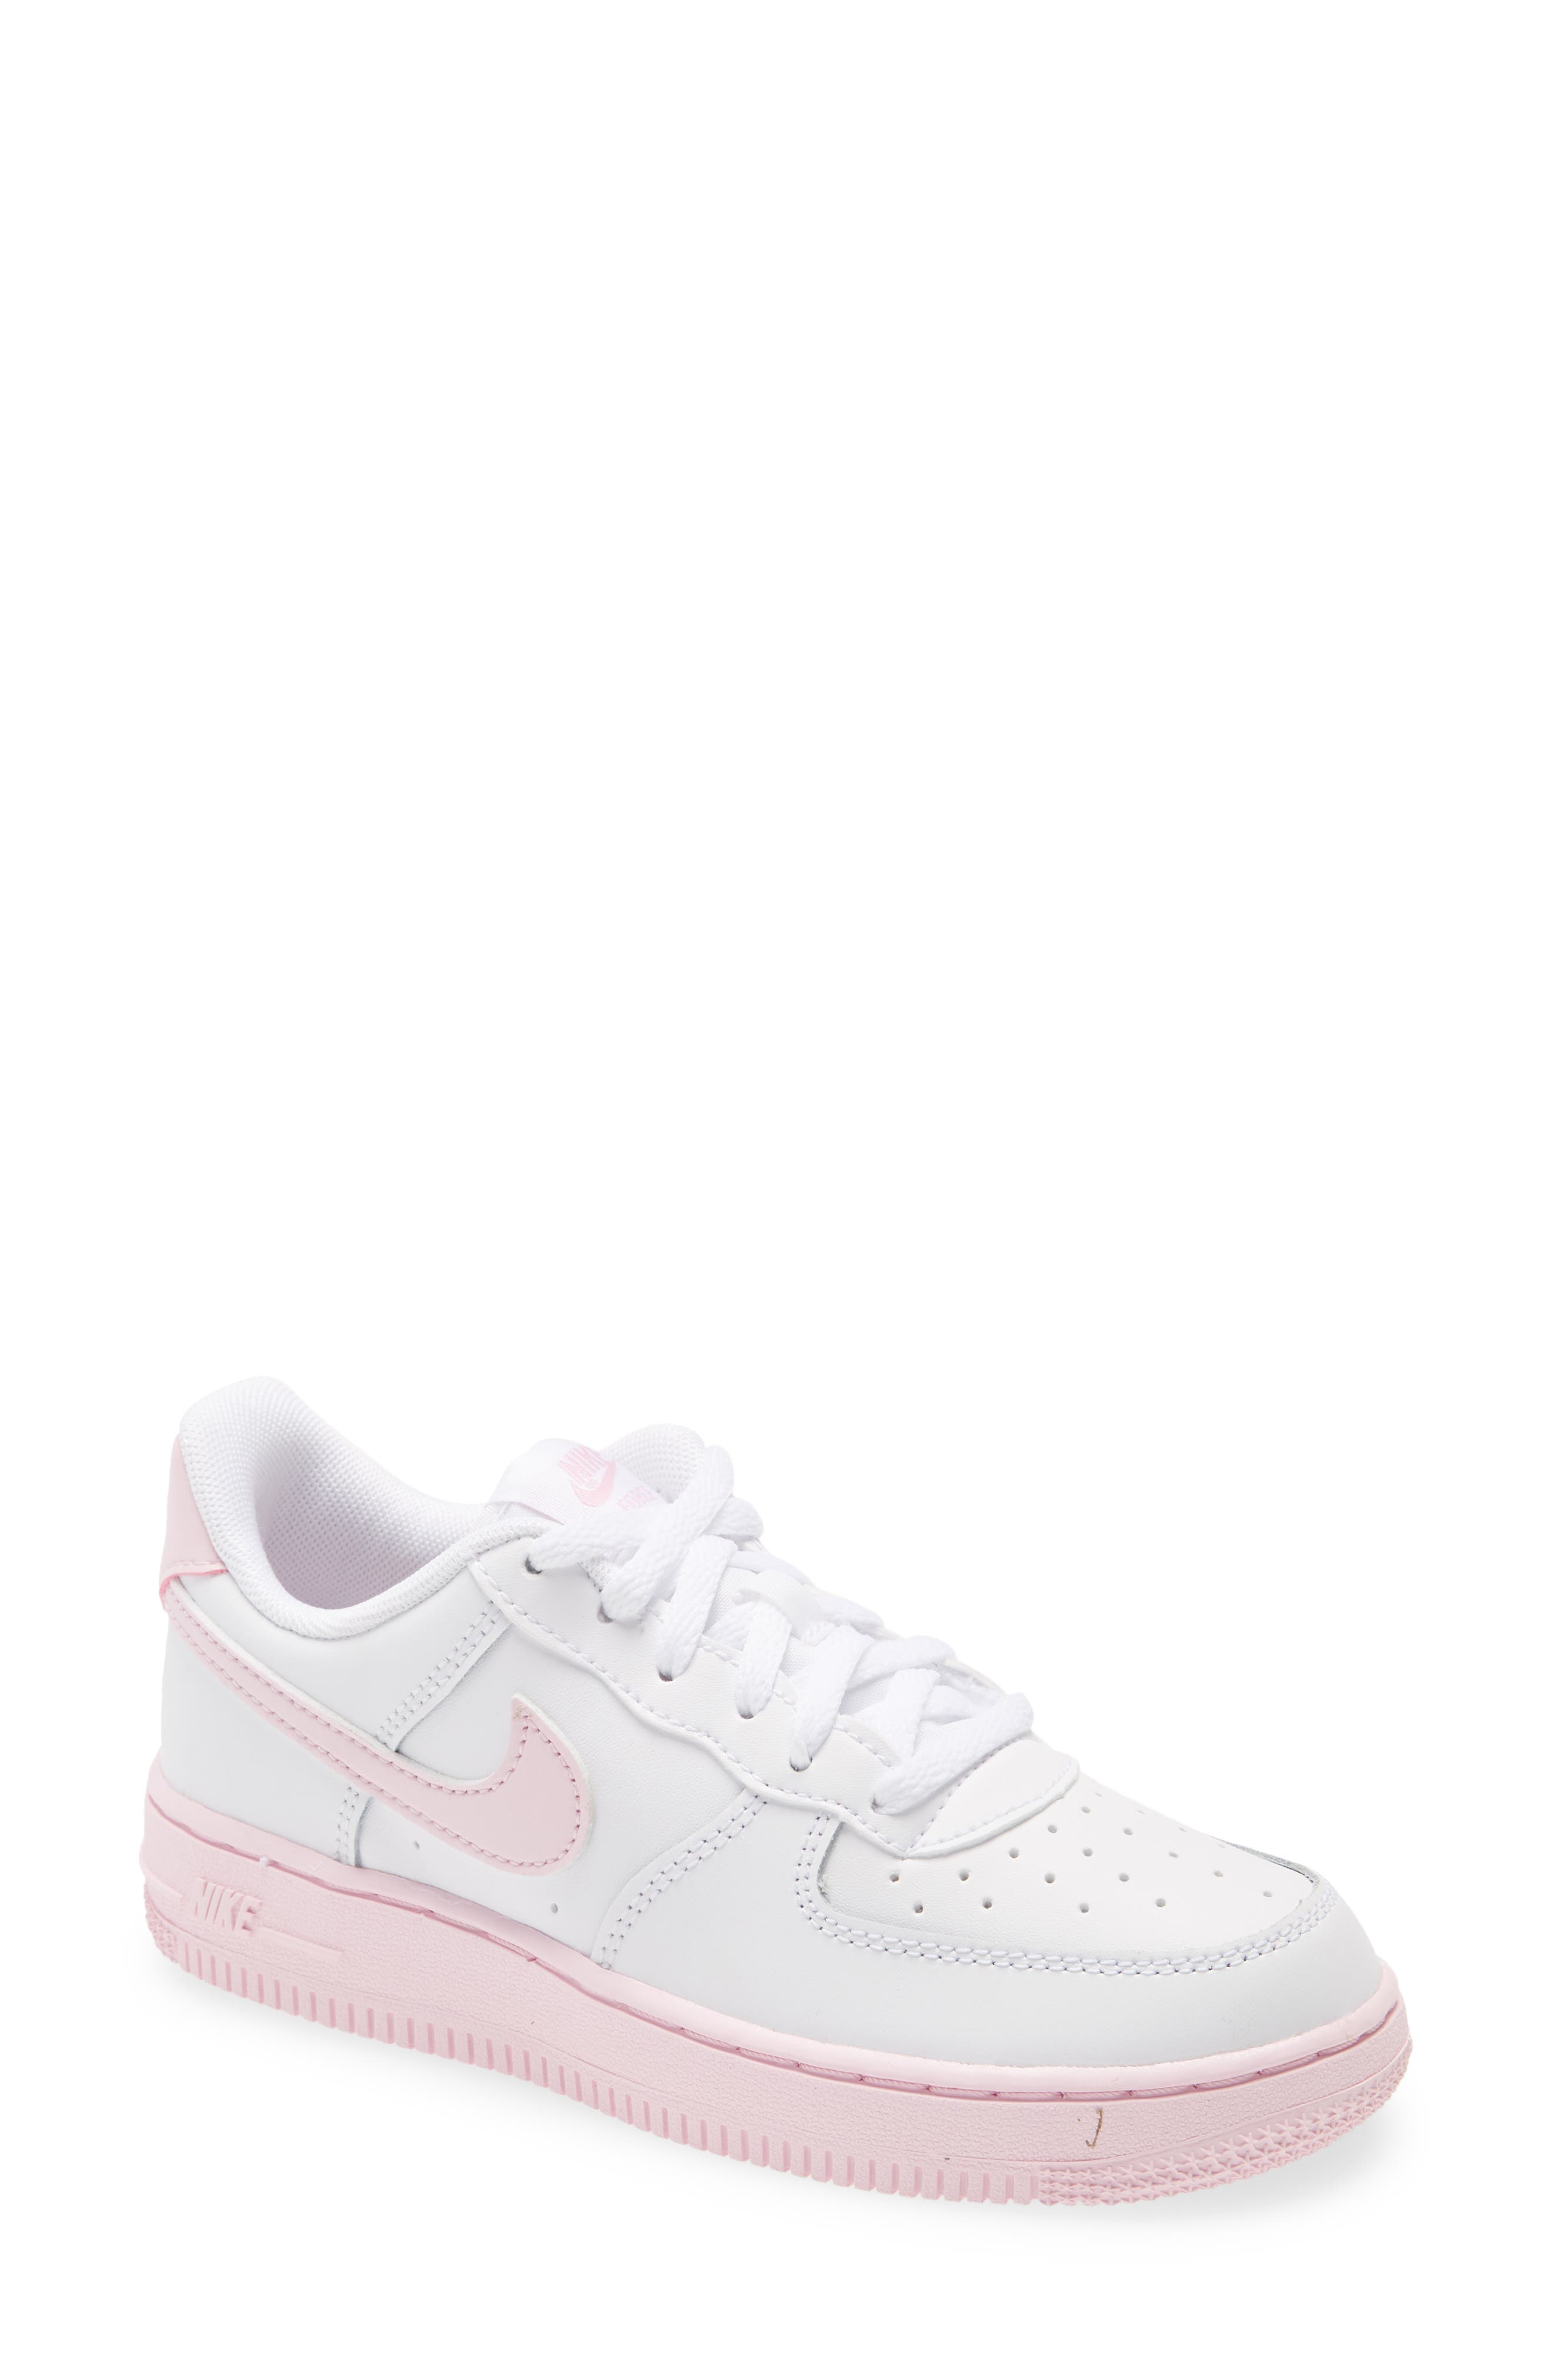 Little Girls' White Shoes (Sizes 12.5-3)